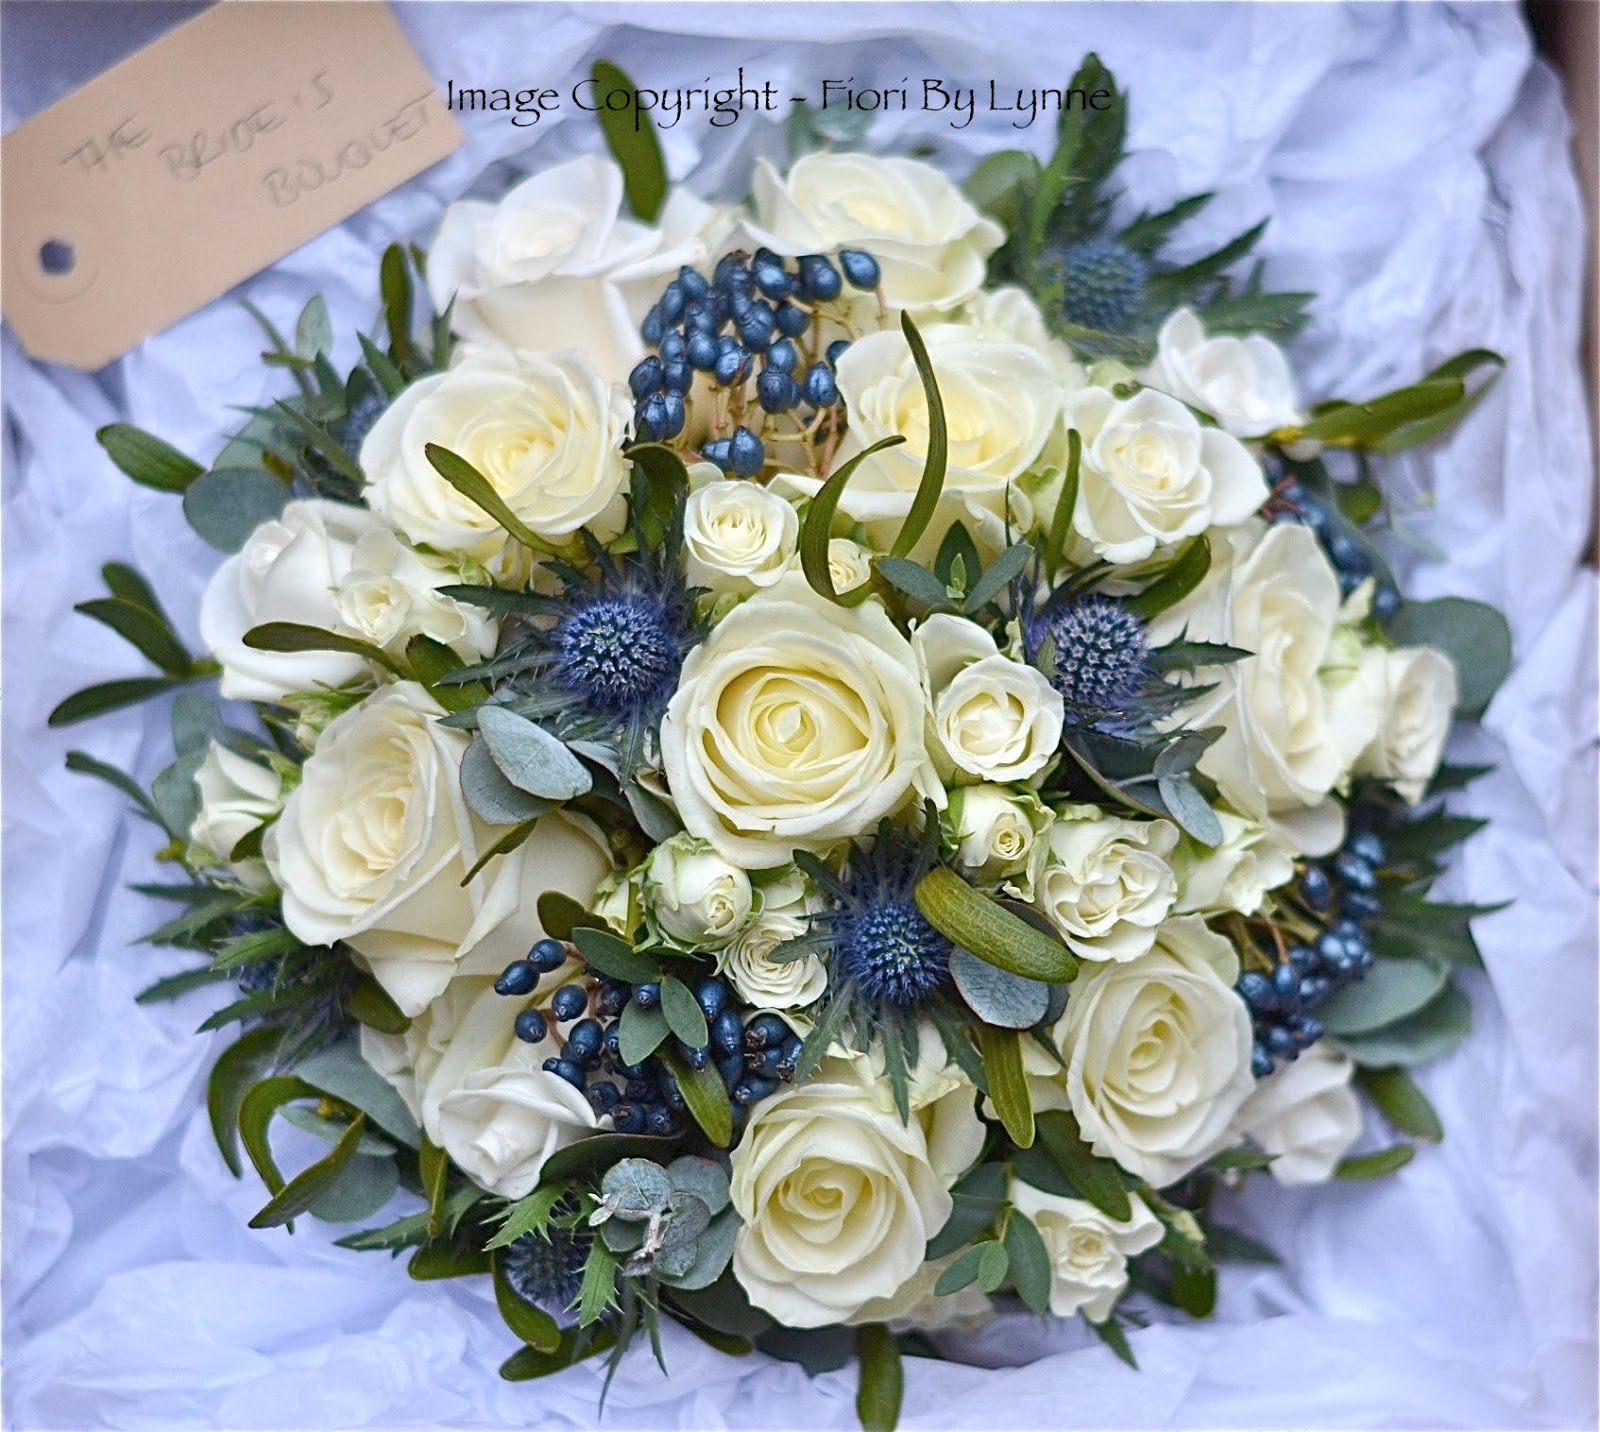 Wedding Bridal Flowers: Wedding Flowers Blog: Laura's Christmas Wedding Flowers